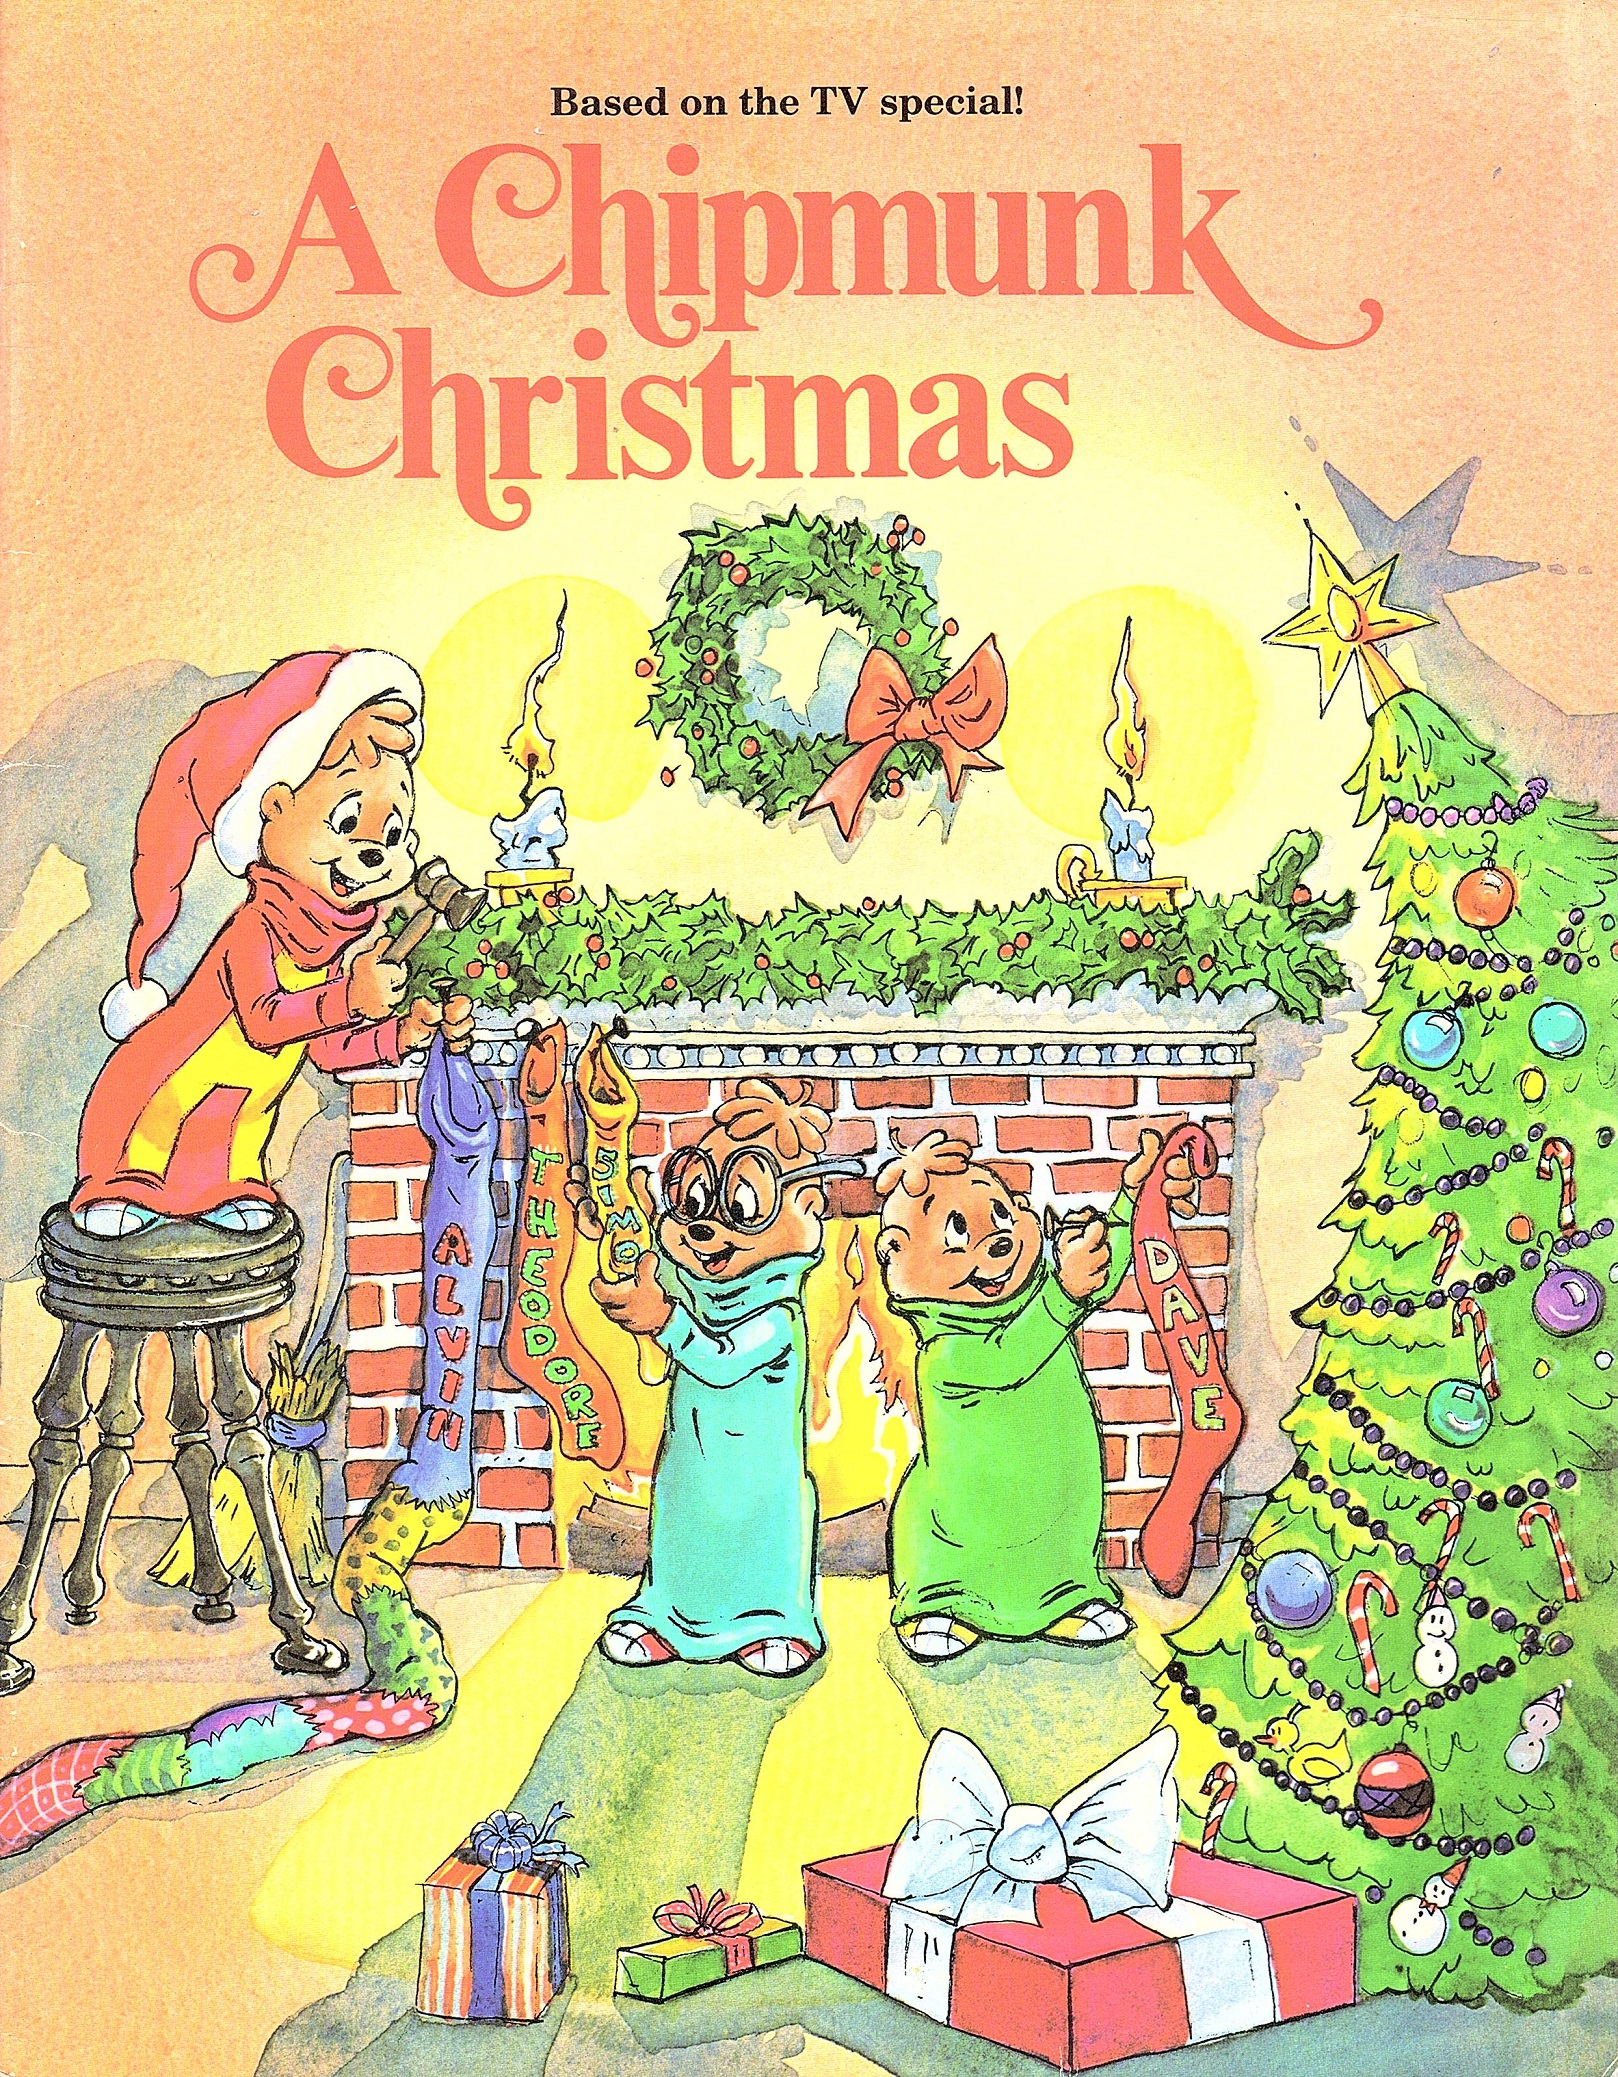 Alvin And The Chipmunks Christmas.A Chipmunk Christmas Book Alvin And The Chipmunks Wiki